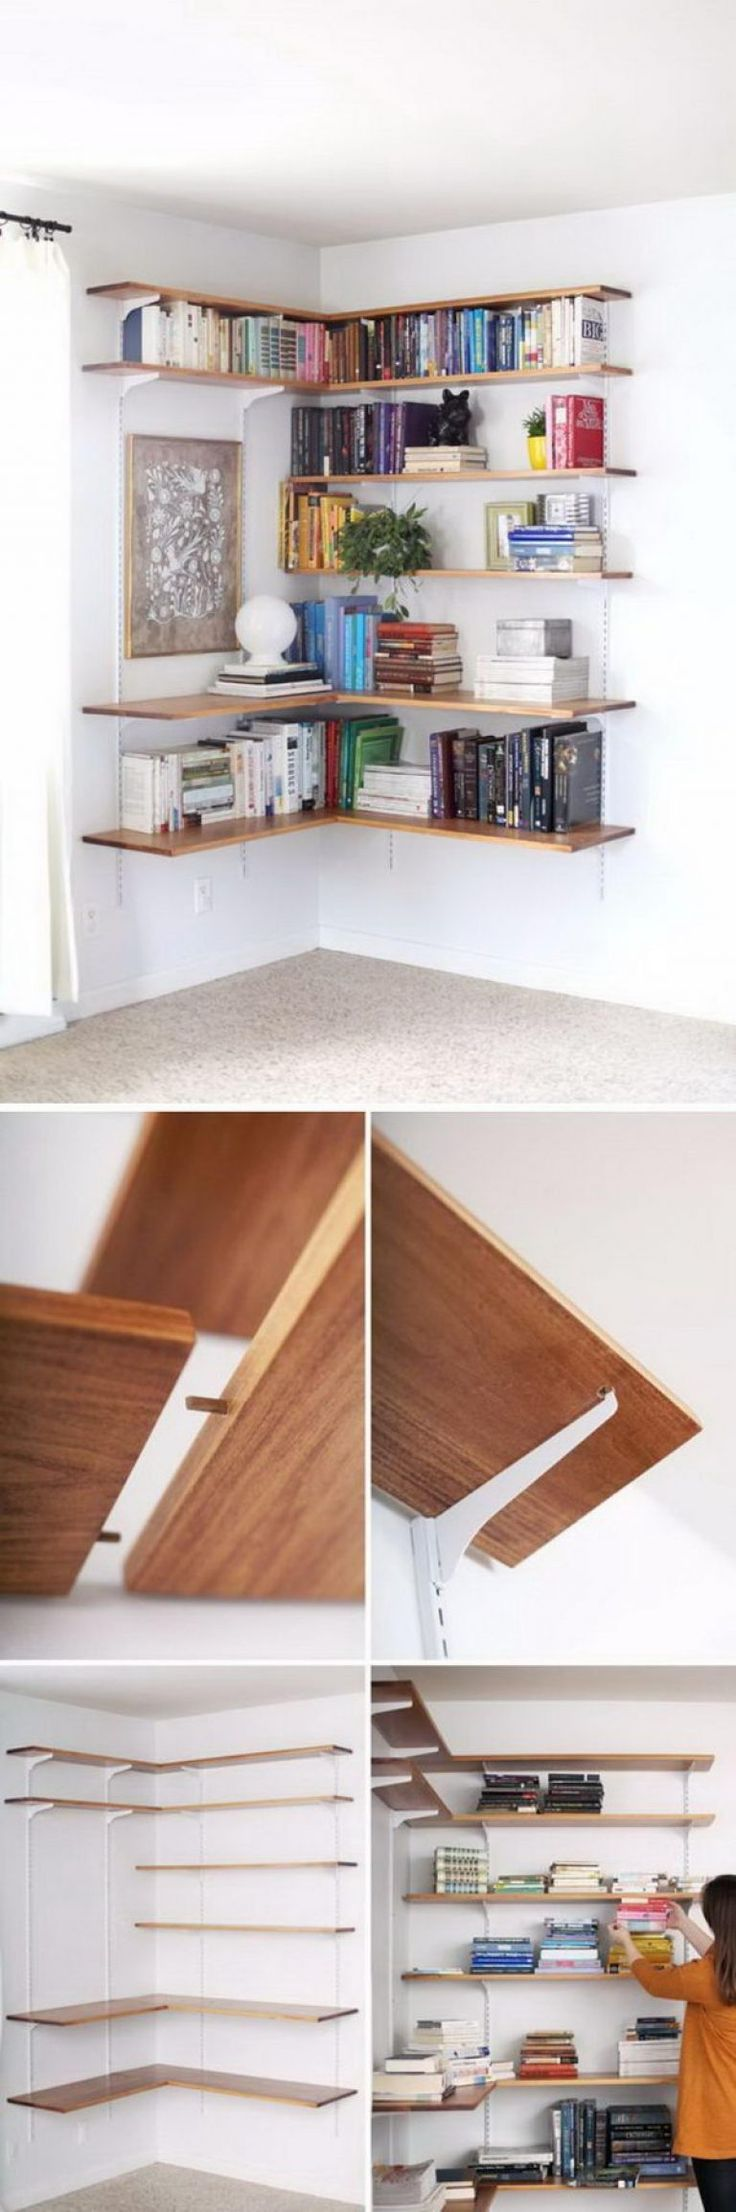 20+ DIY Corner Shelves to Beautify Your Awkward Corner - The corners of the houses are some of those places that most people